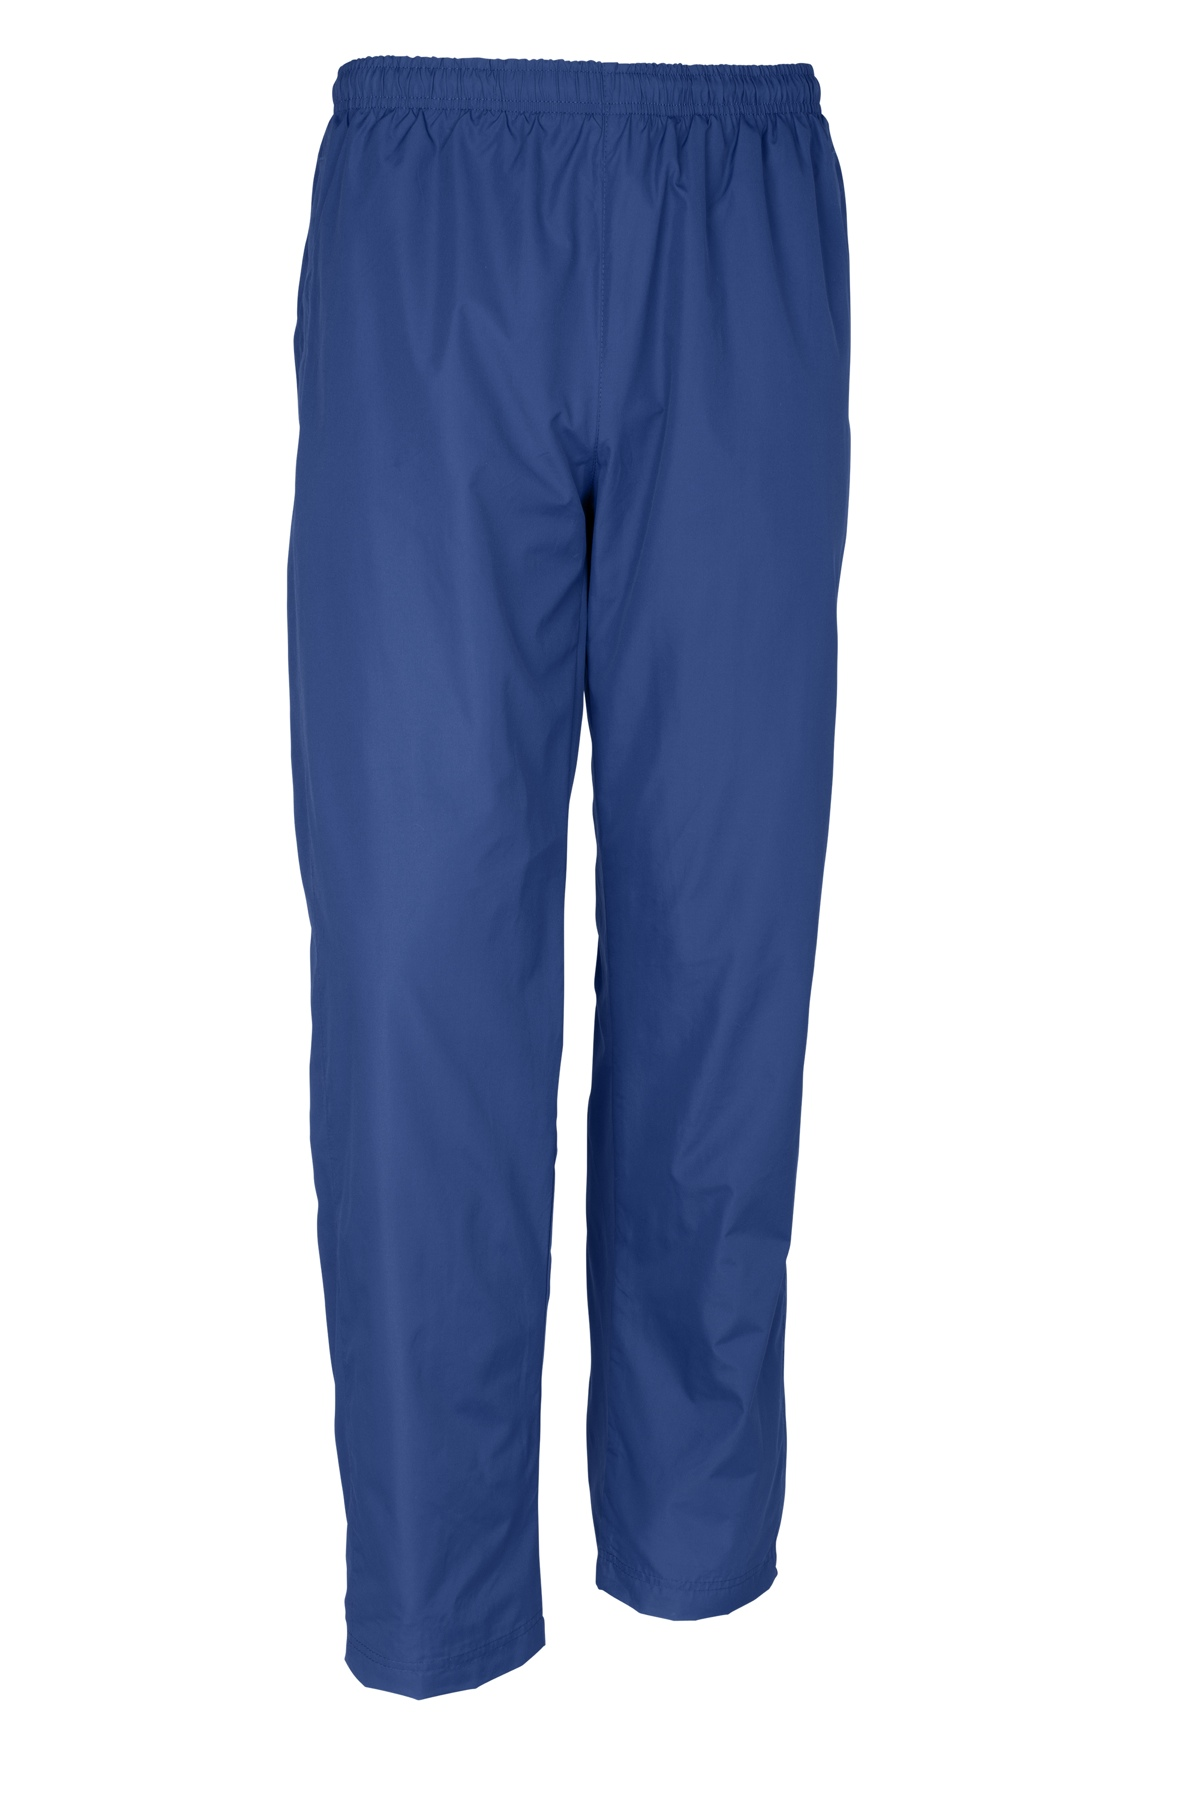 ypst74 Sport-Tek® - Youth Wind Pant